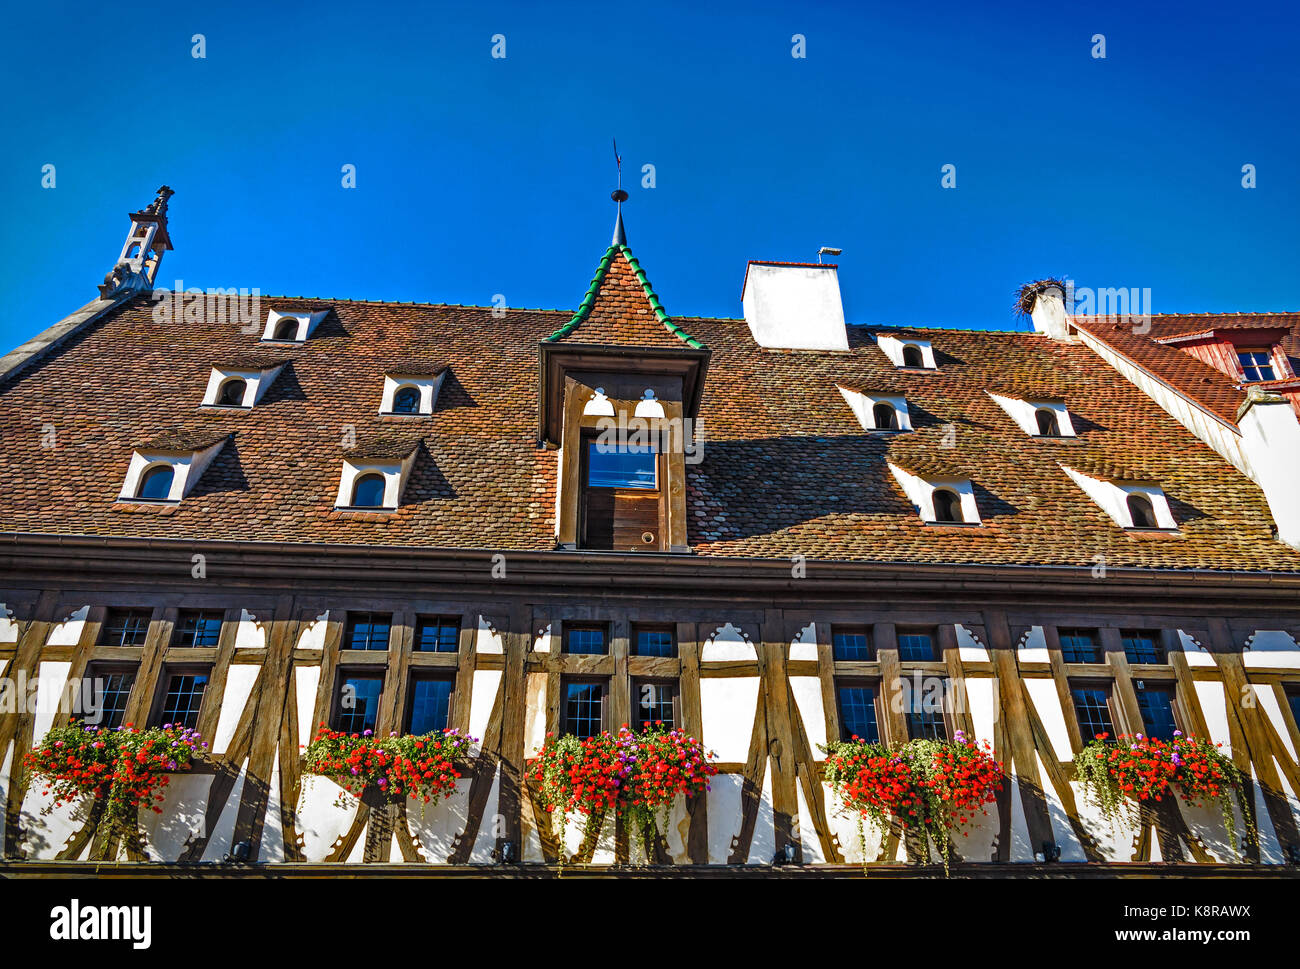 Picturesque historic Renaissance-style the Hall aux Blés granary in Obernai, near Strasbourg, France - Stock Image